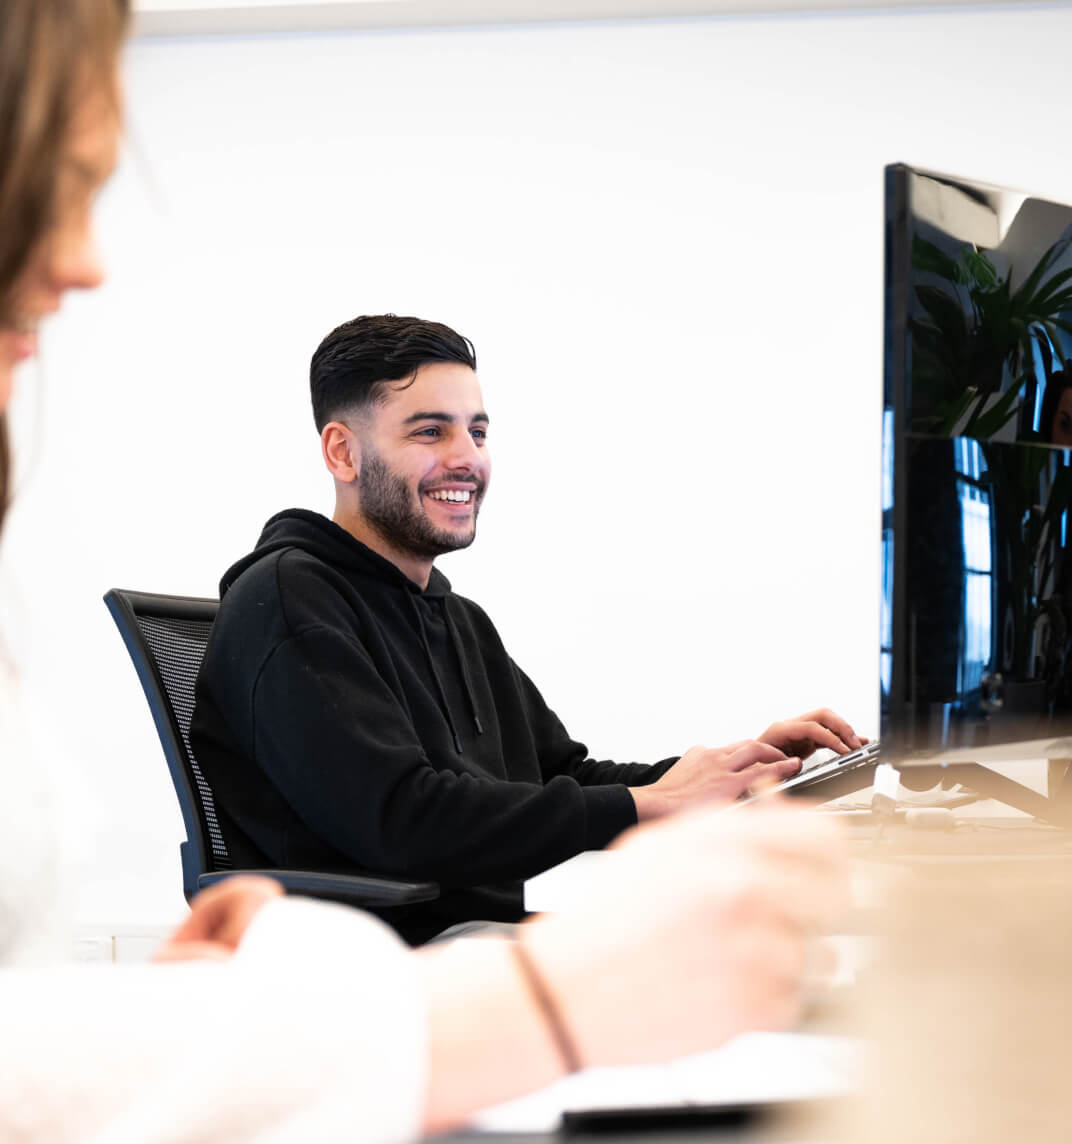 DIQQ employees looking at laptop together